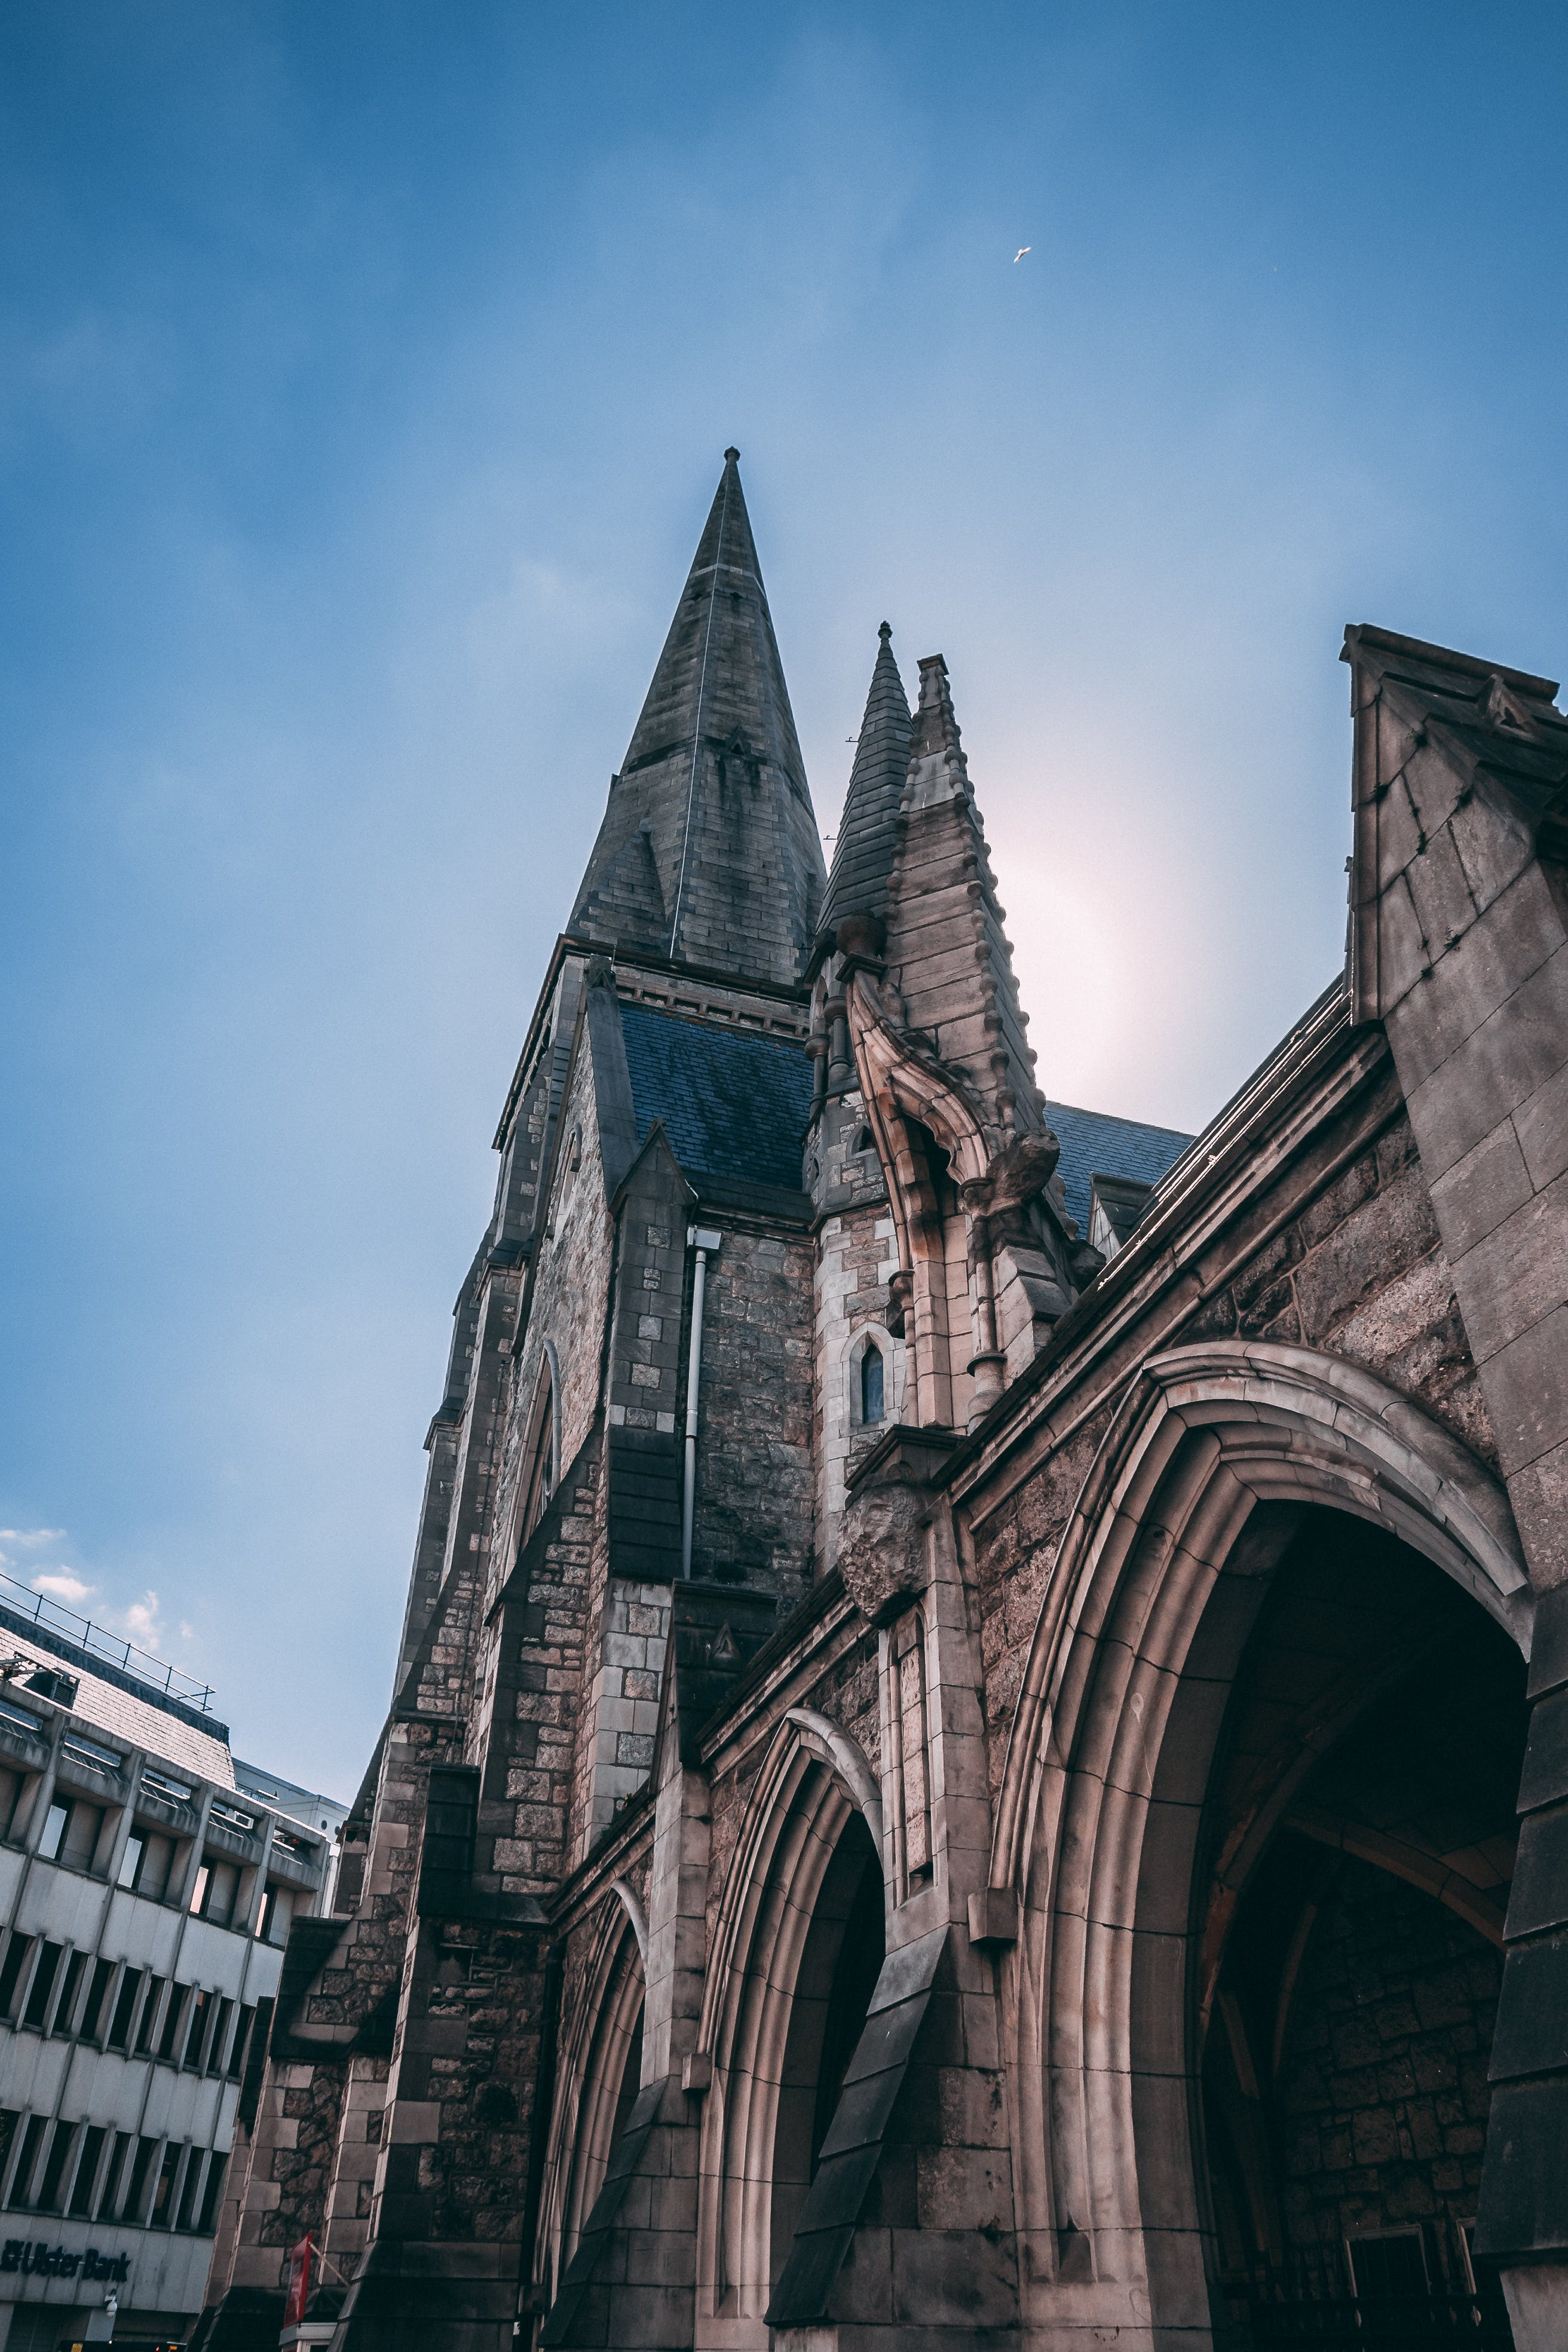 Low Angle View on Cathedral